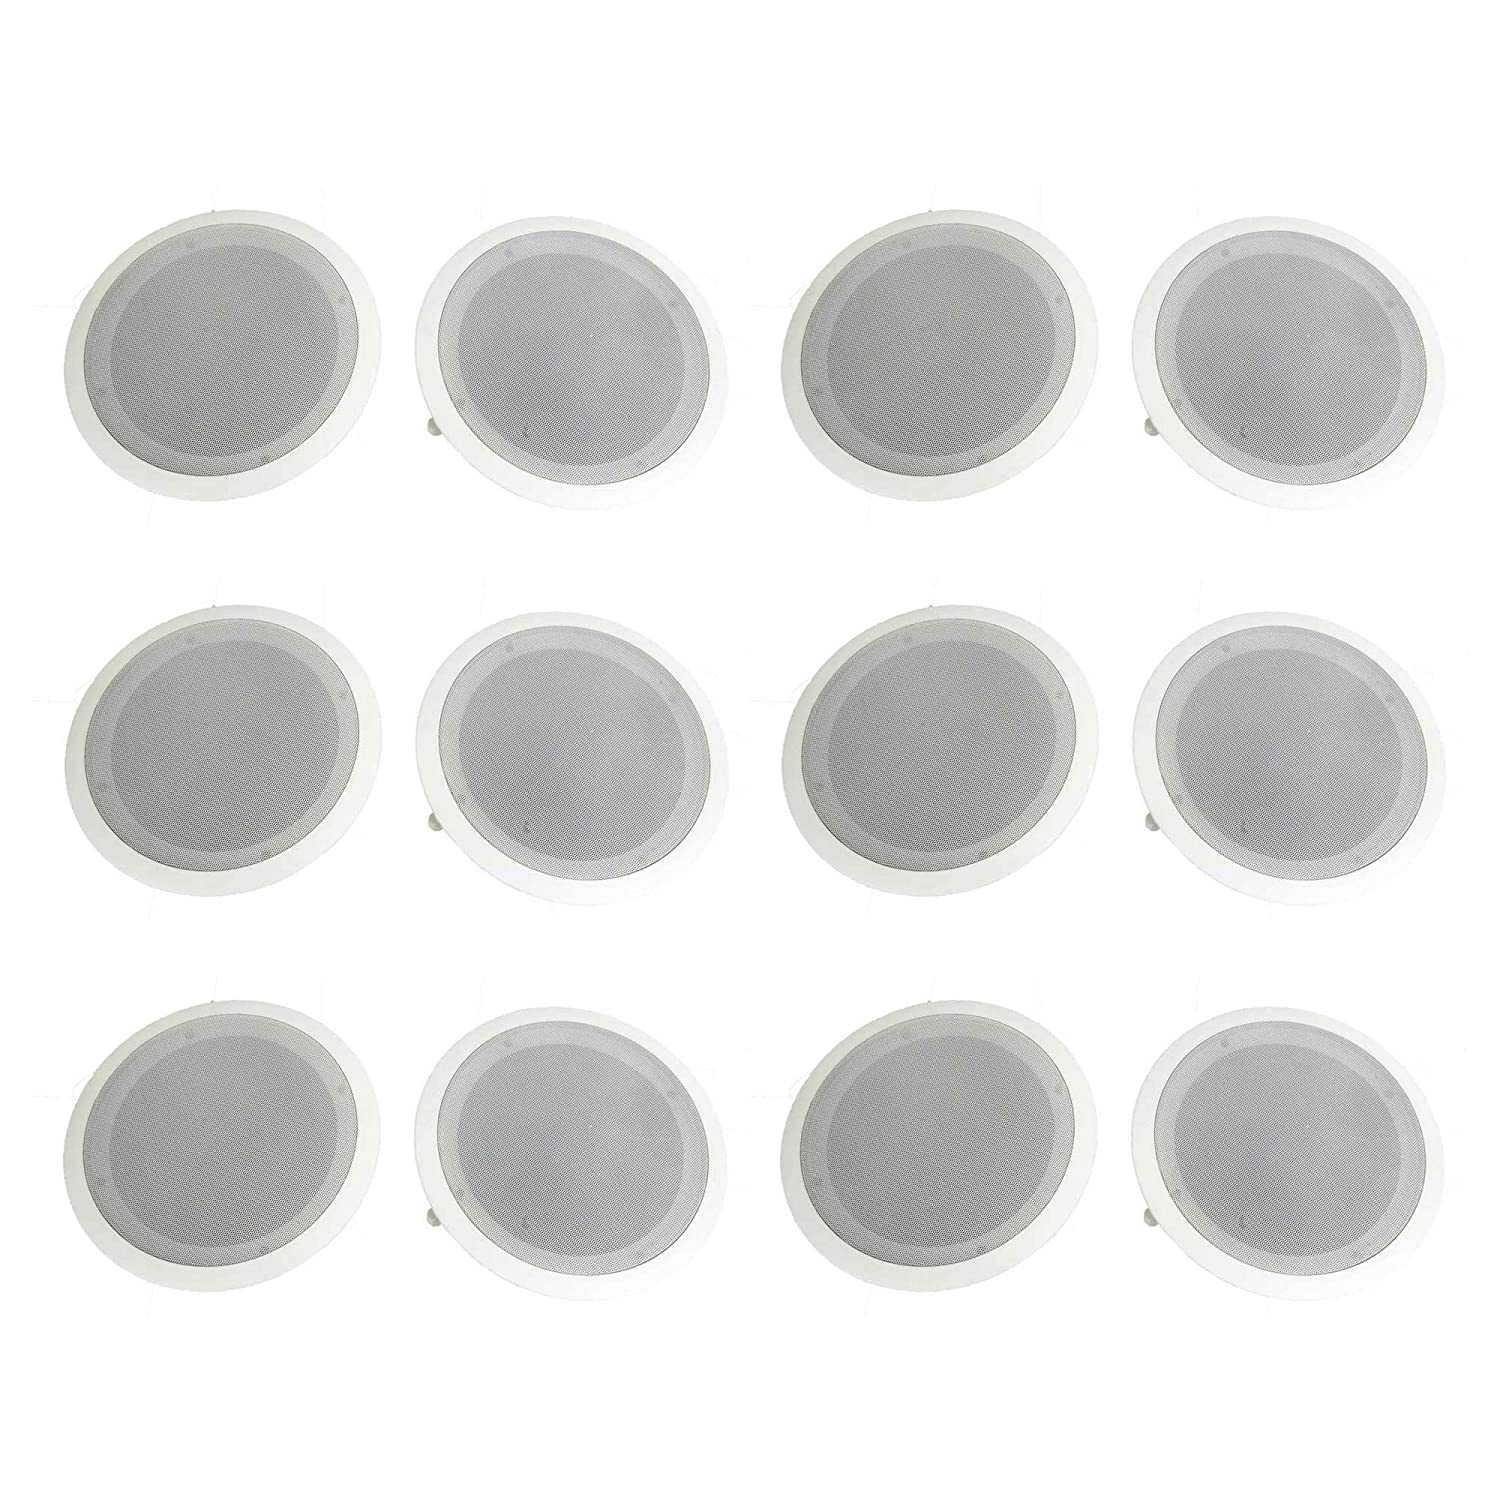 Pyle PDIC81RD 8-Inch Round In-Wall Speakers, 12 Pack